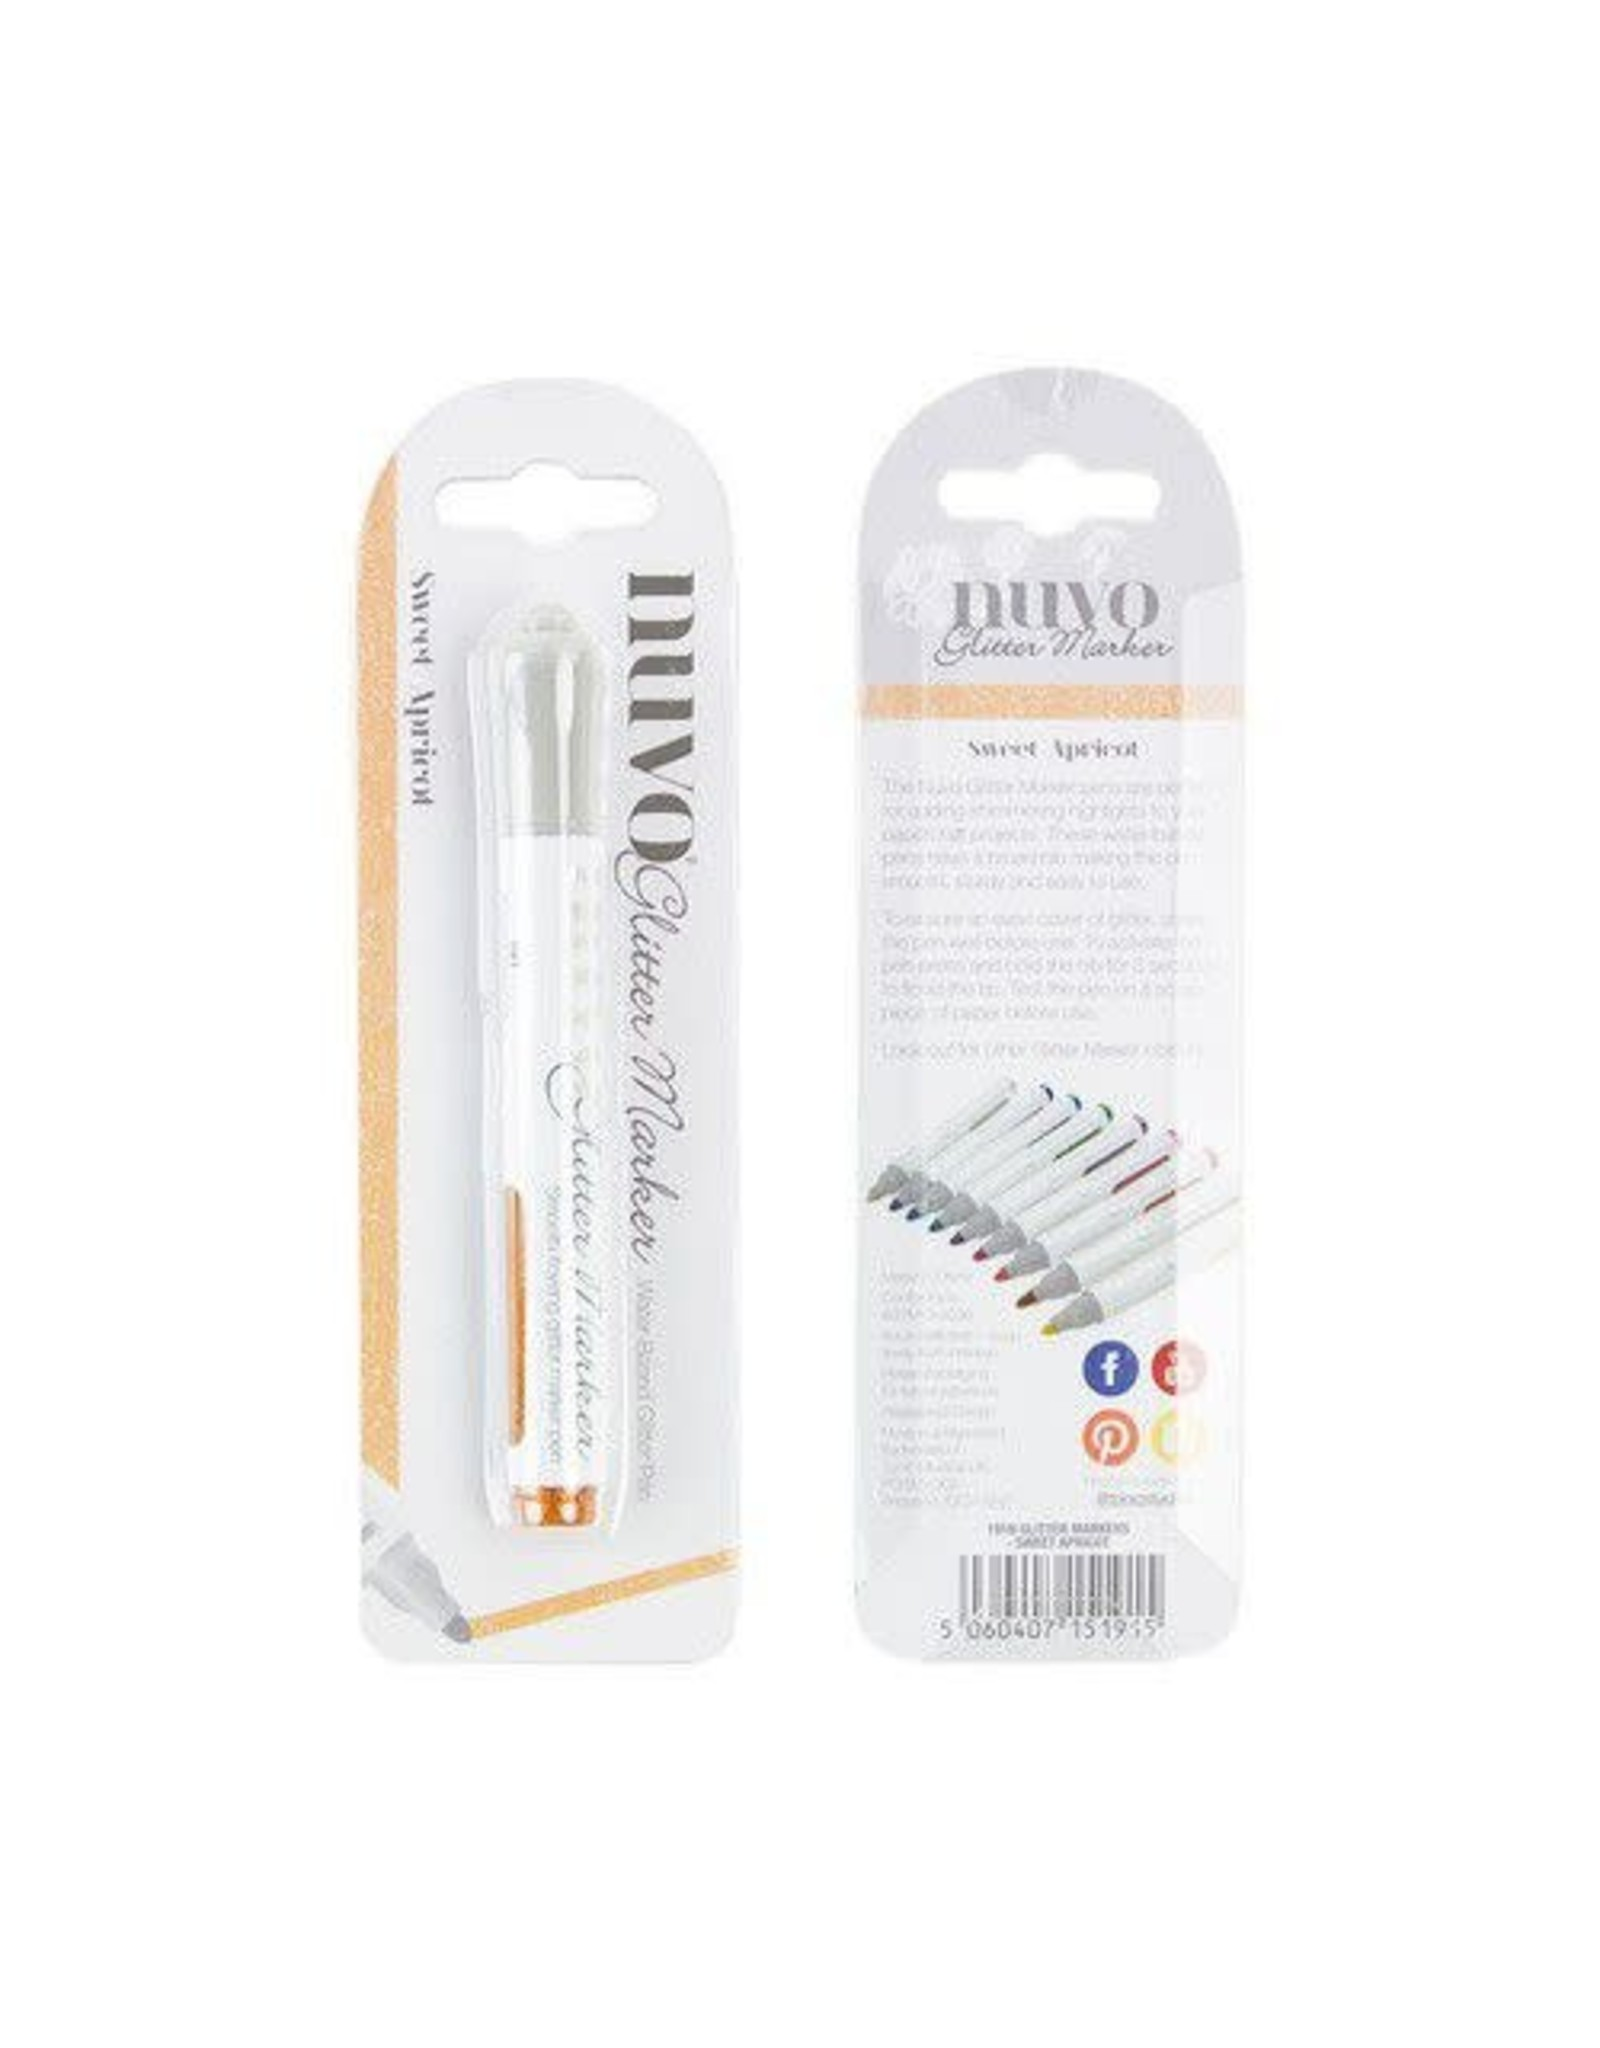 Nuvo by tonic Nuvo Glitter marker - sweet apricot 191N